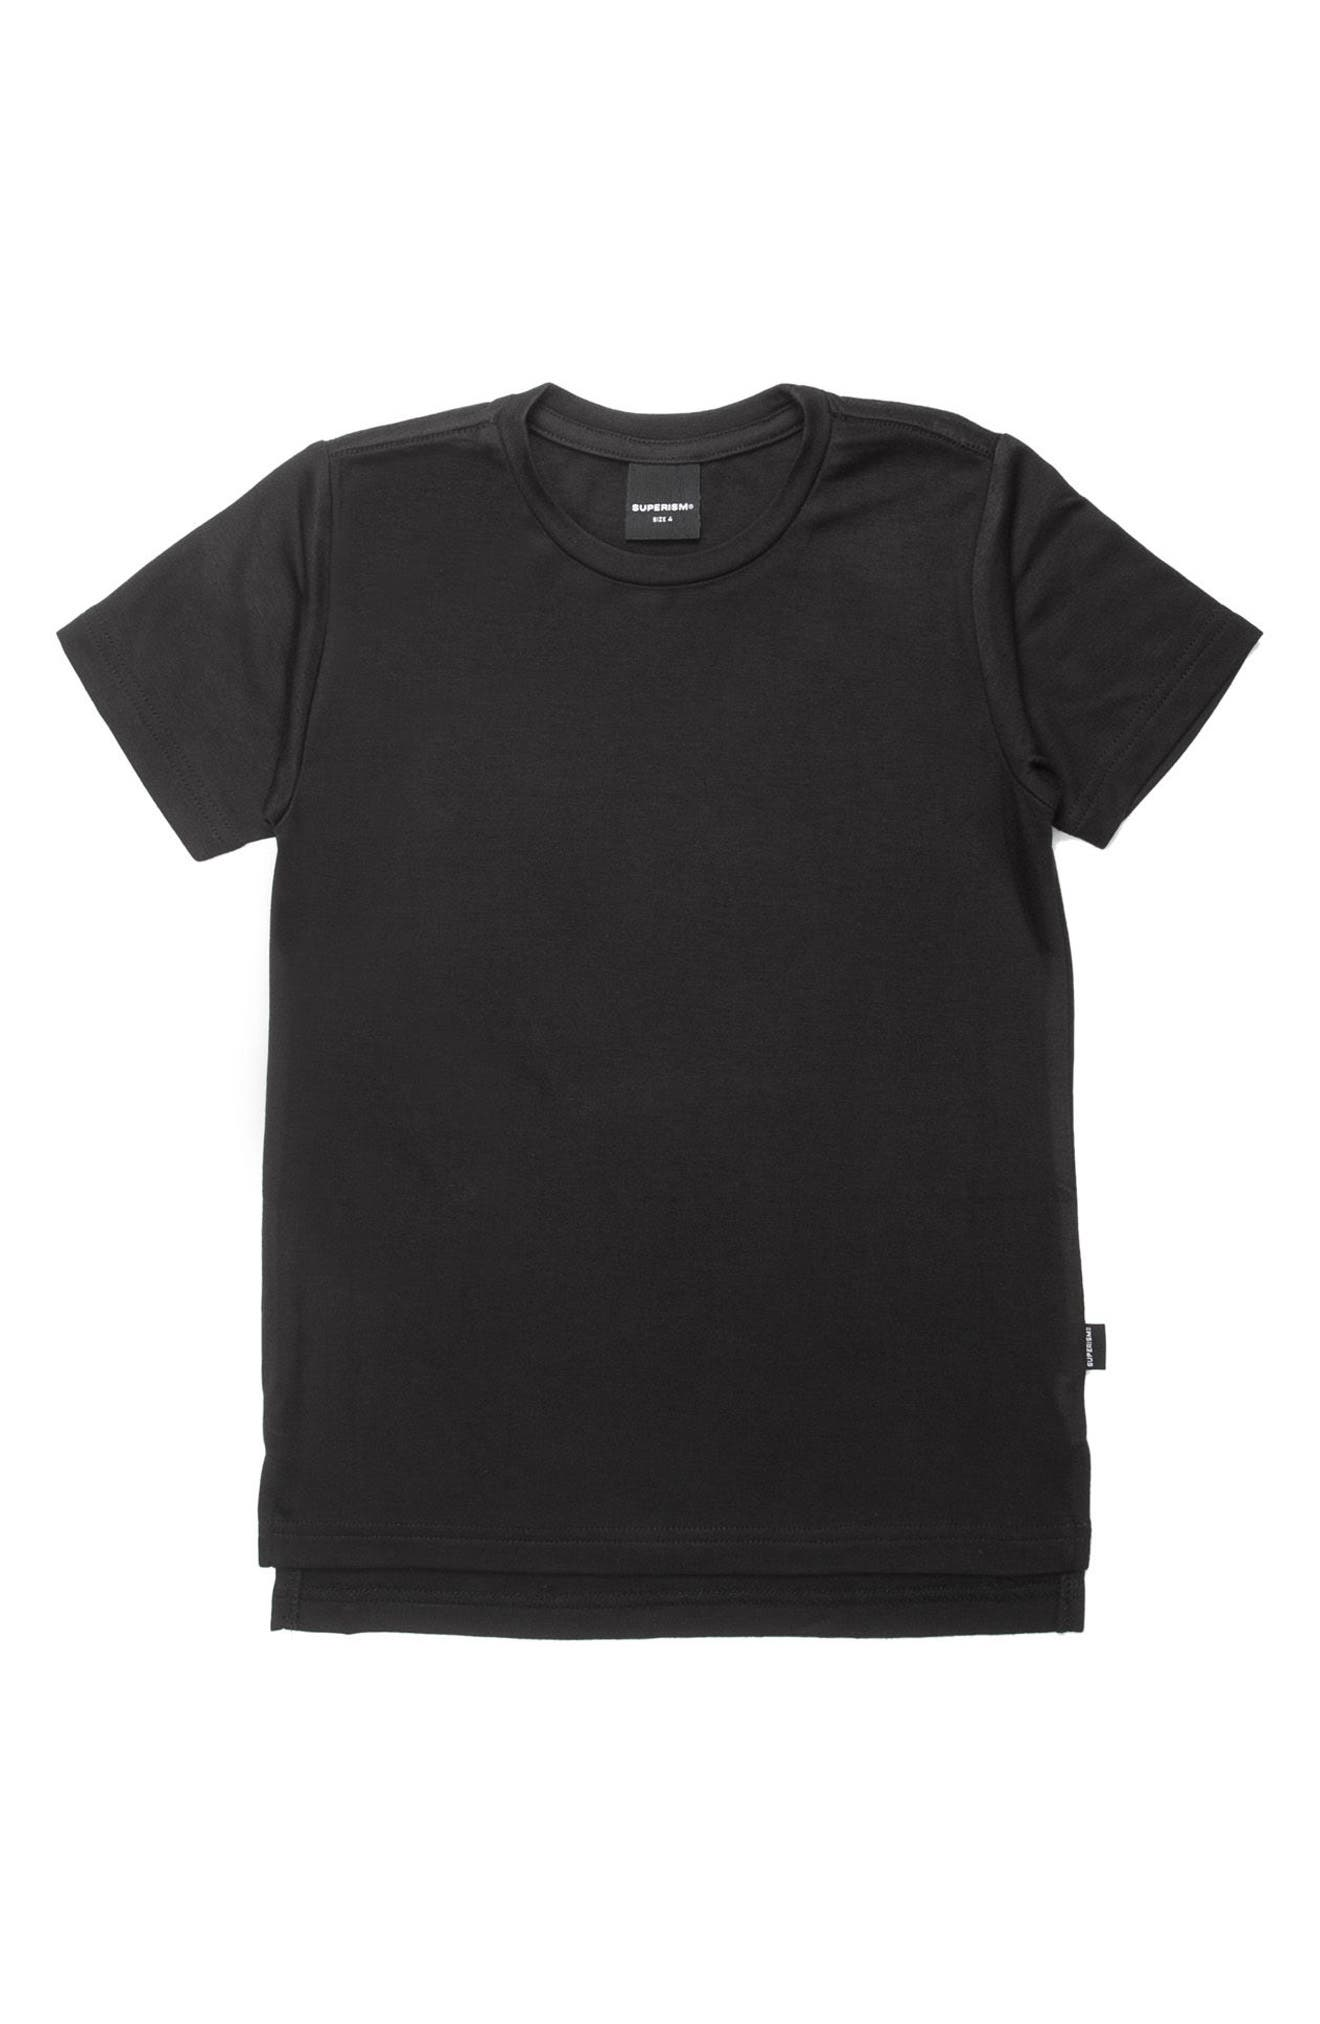 Brycen T-Shirt,                         Main,                         color, Black